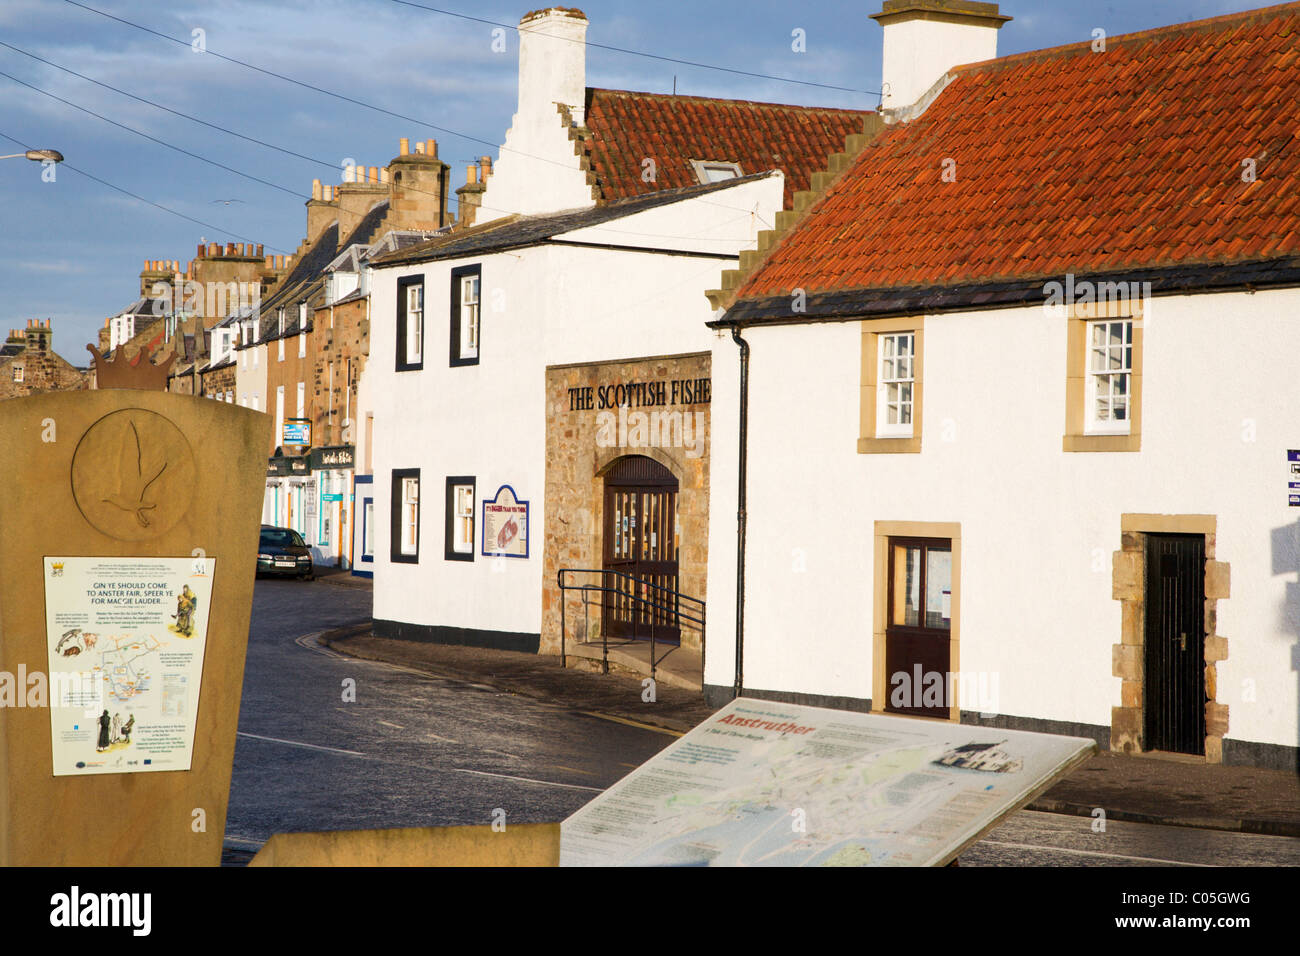 Scottish Fisheries Museum Anstruther Fife Scotland - Stock Image